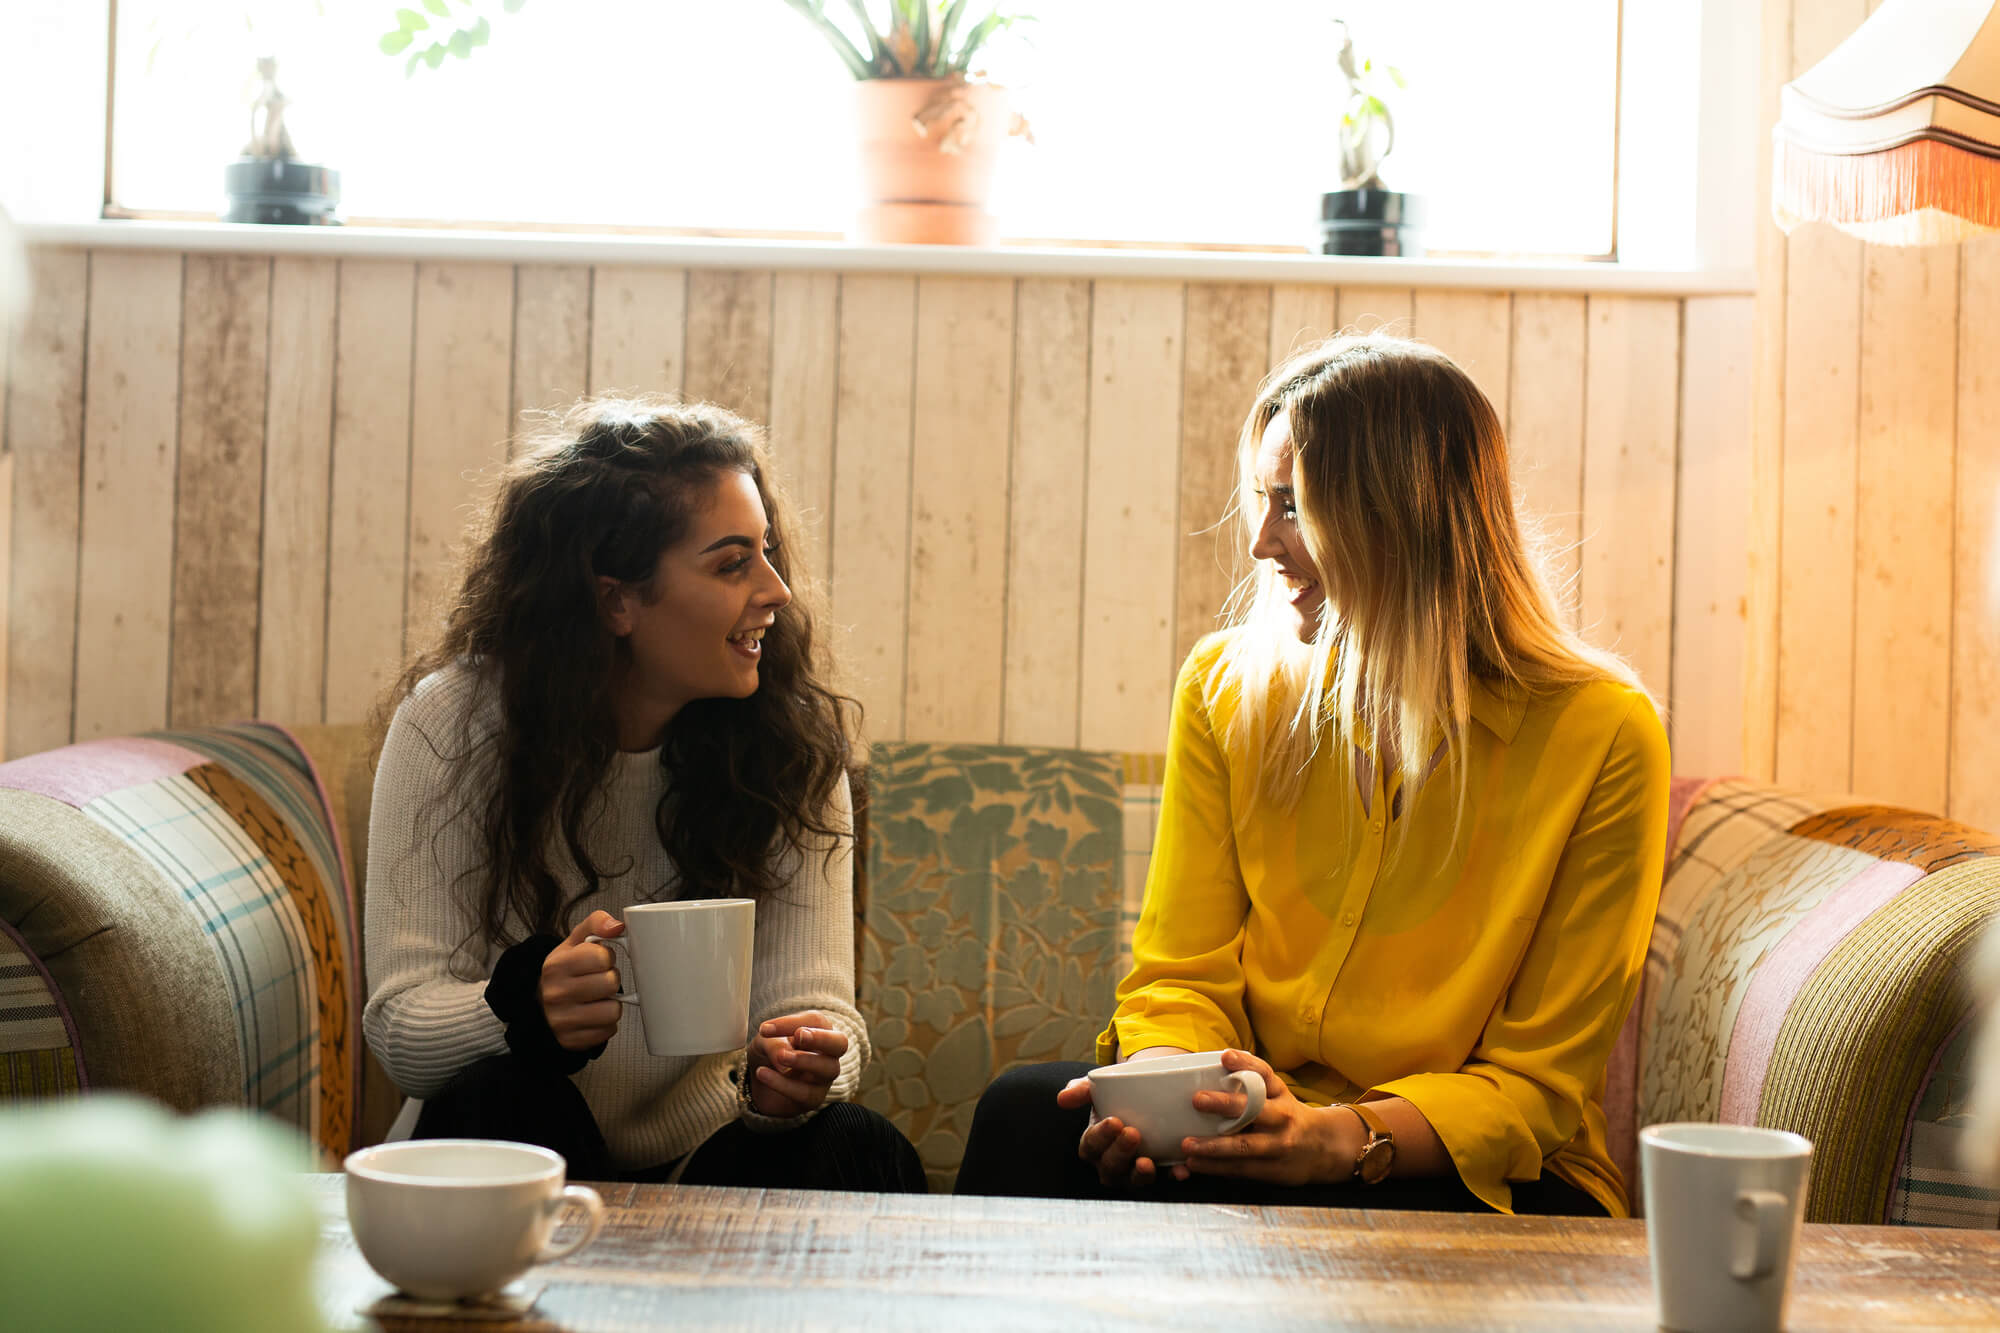 A smiling student socialising in Blends coffee shop